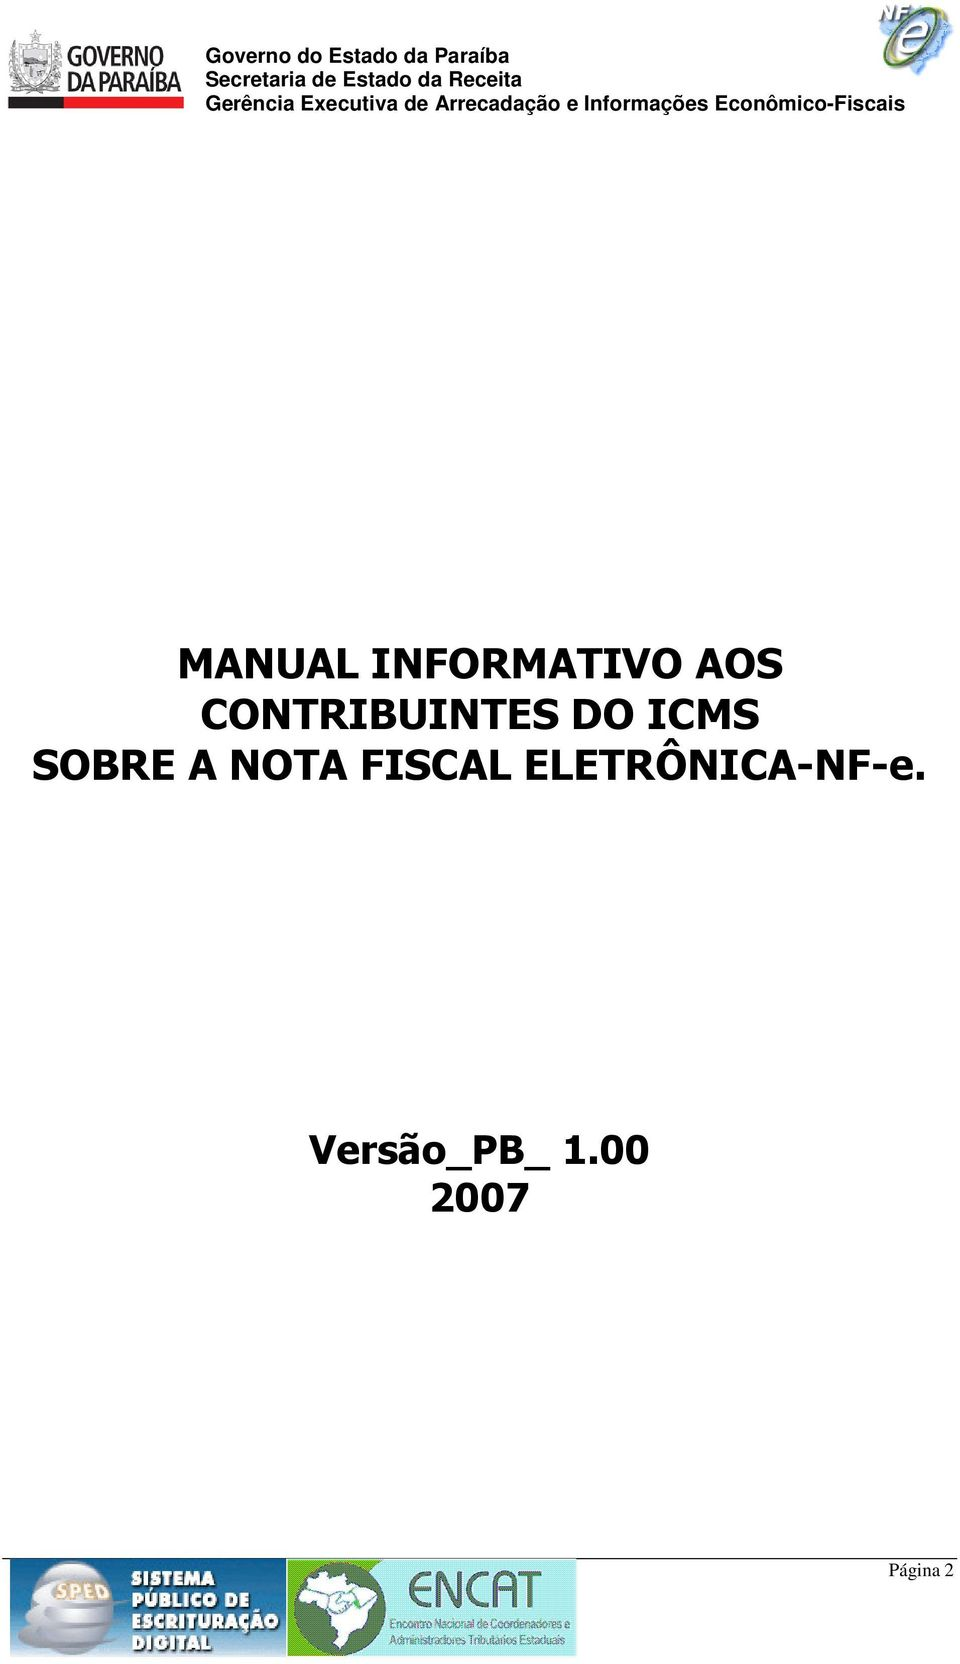 A NOTA FISCAL